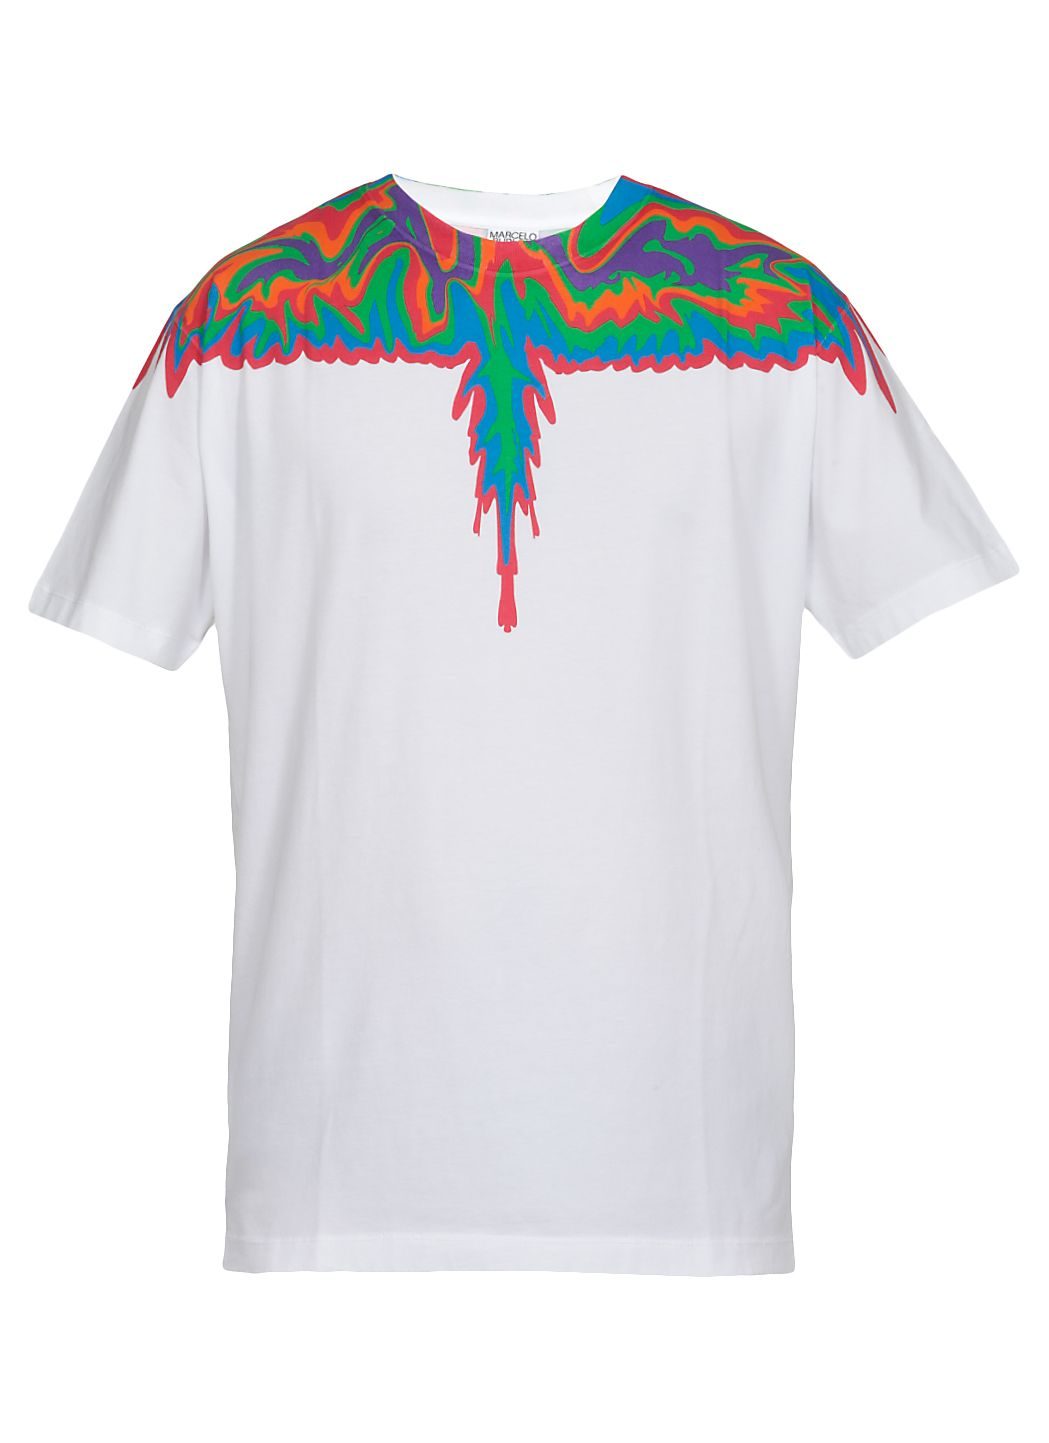 Psychedelic wings T-shirt